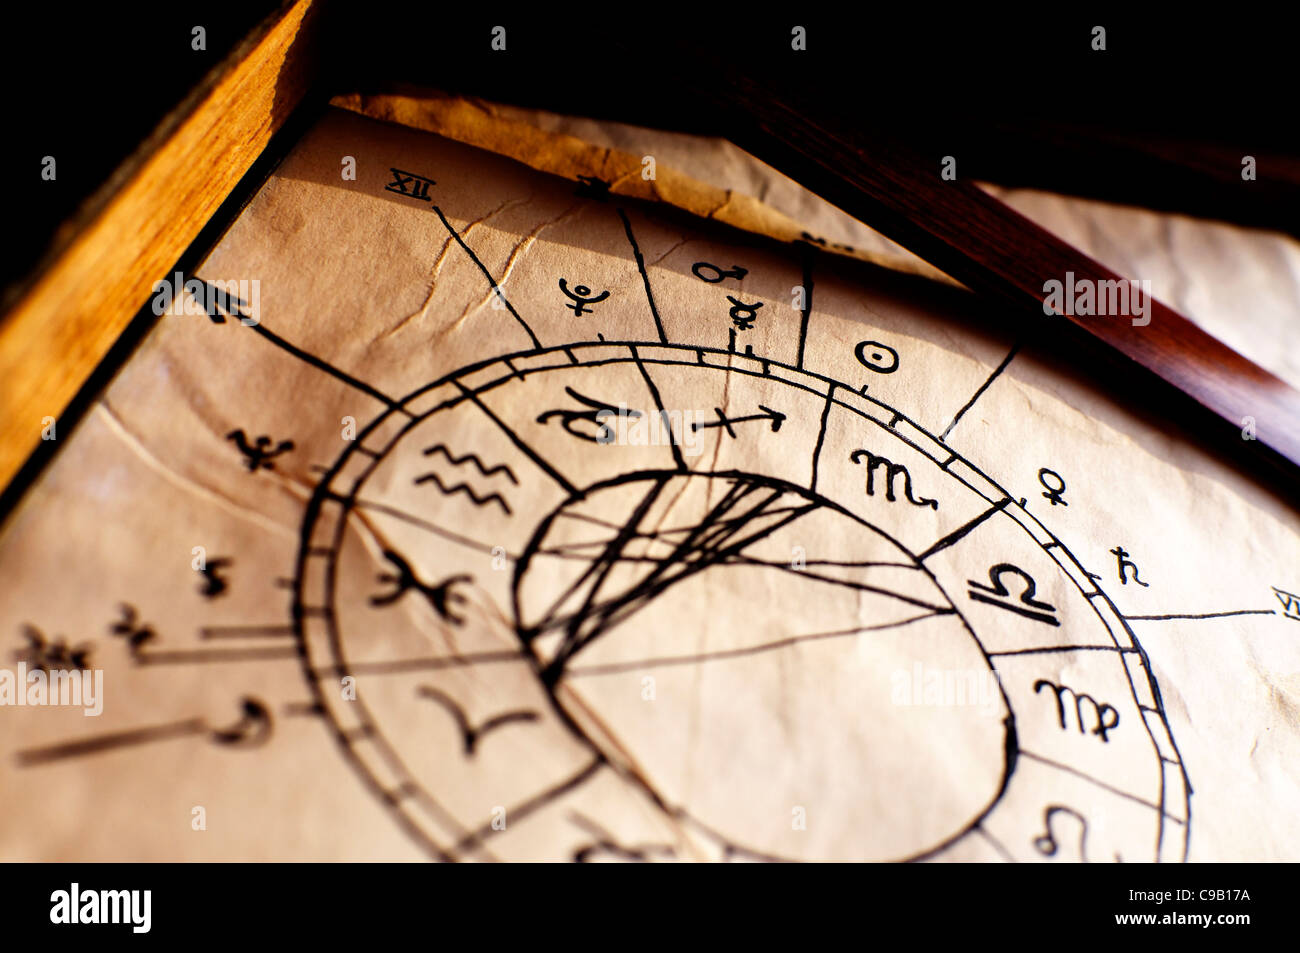 Horoscope traditionnel, utilisé pour prédire l'avenir Photo Stock